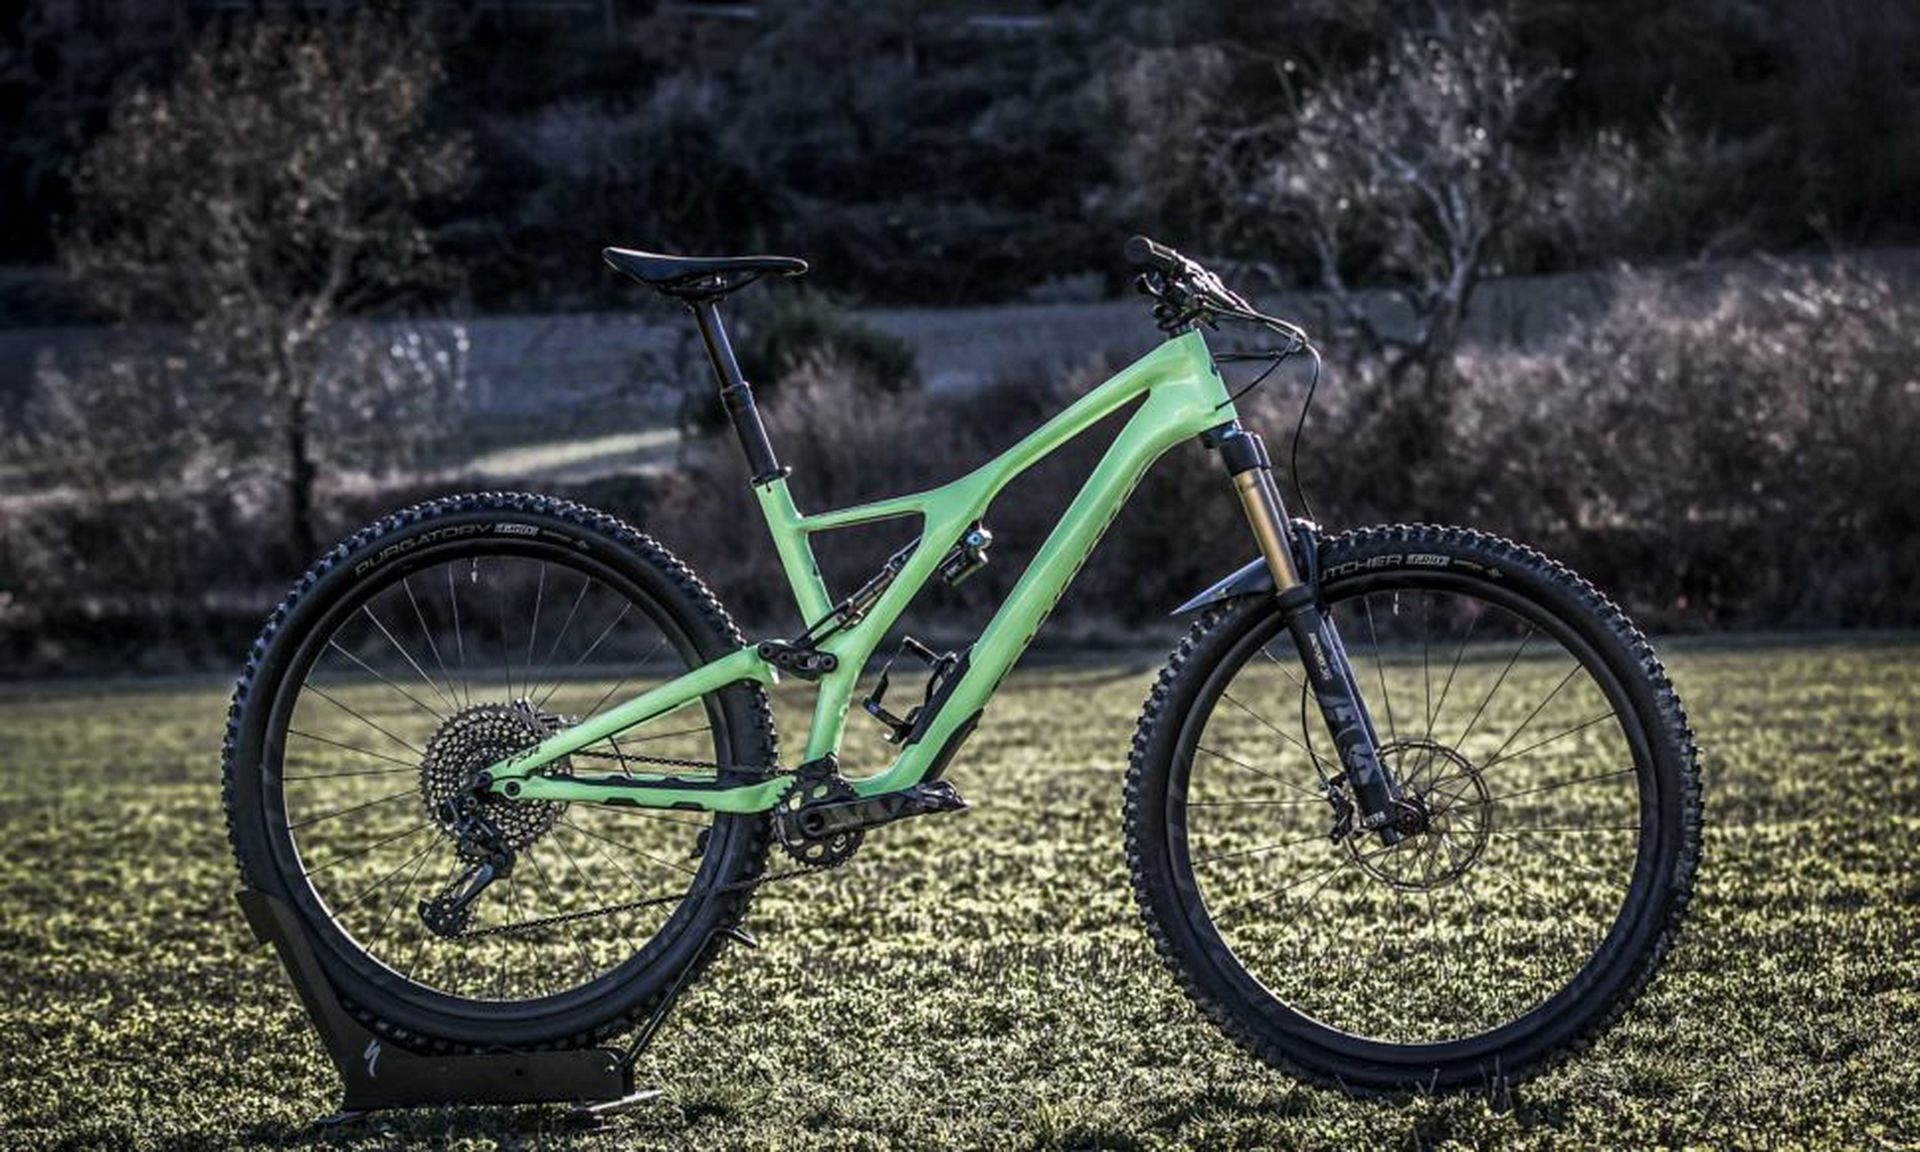 The Stumpjumper (standard version) is offered in 29- and 27.5-inch options. The S-Works 29er shown above has a 150-millimeter travel fork combined with 140 millimeters of rear-wheel travel.